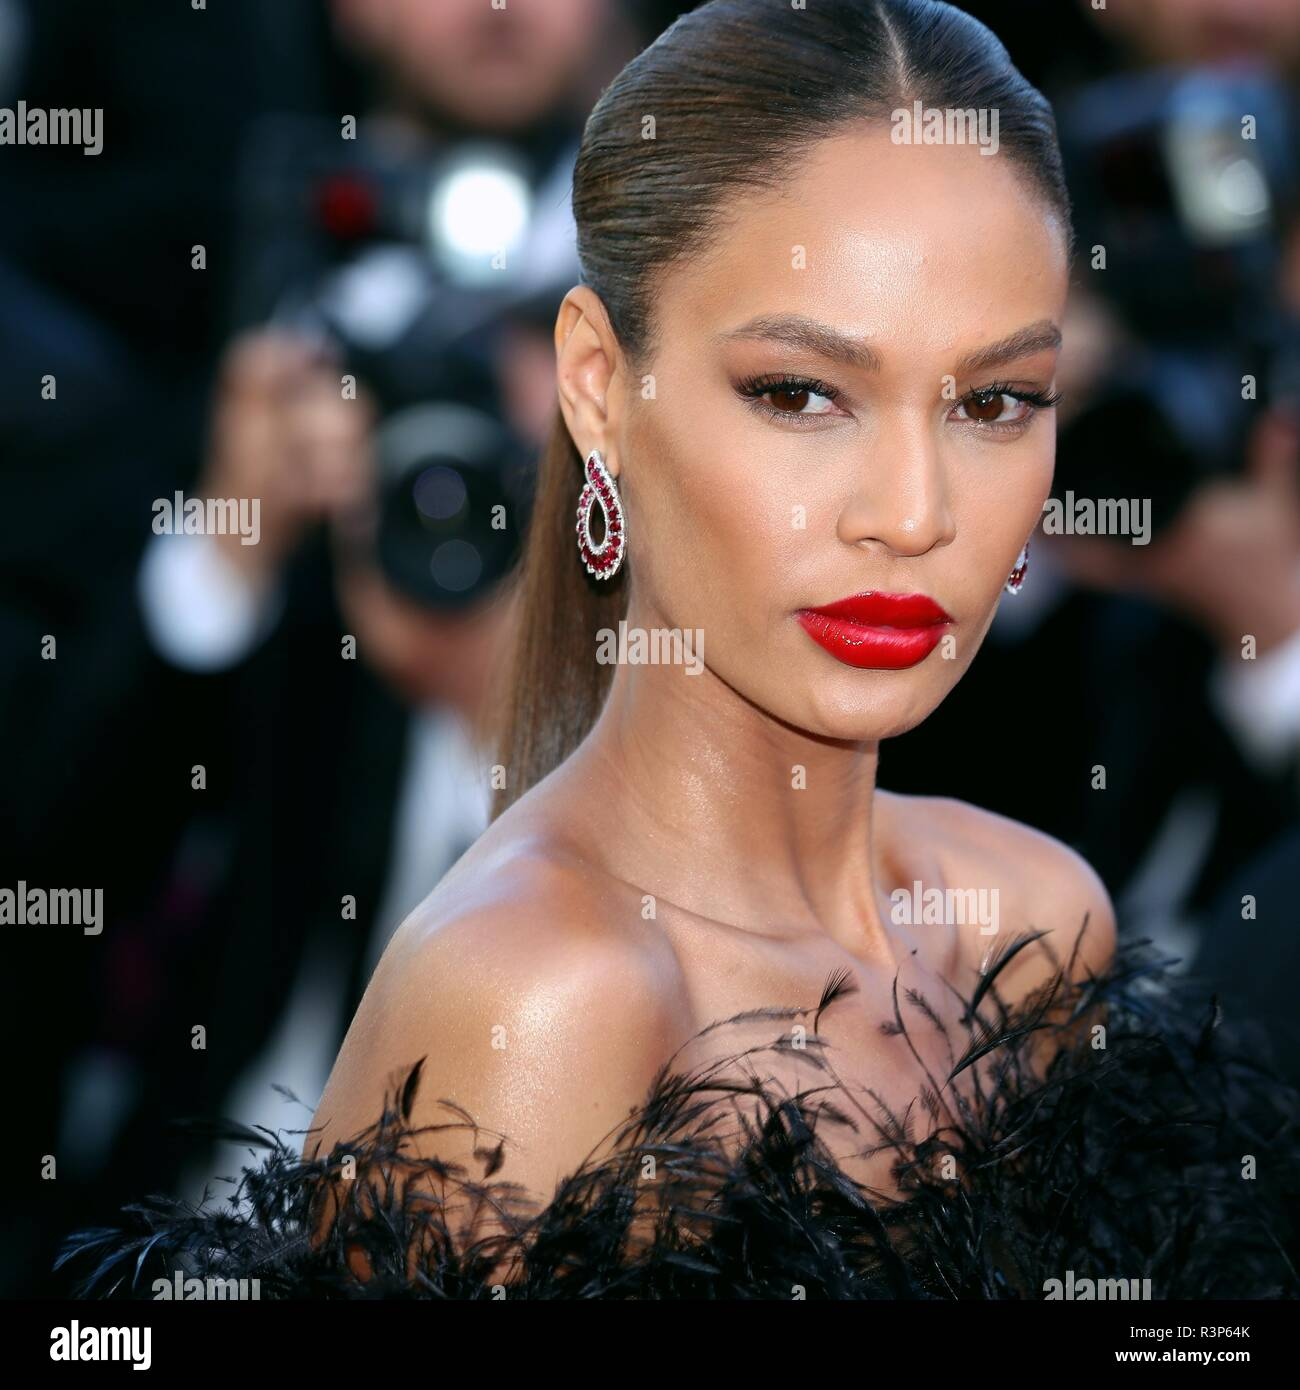 CANNES, FRANCE – MAY 12, 2018: Joan Smalls walks the red carpet for the 'Girls of the Sun' screening at the Festival de Cannes (Ph: Mickael Chavet) - Stock Image